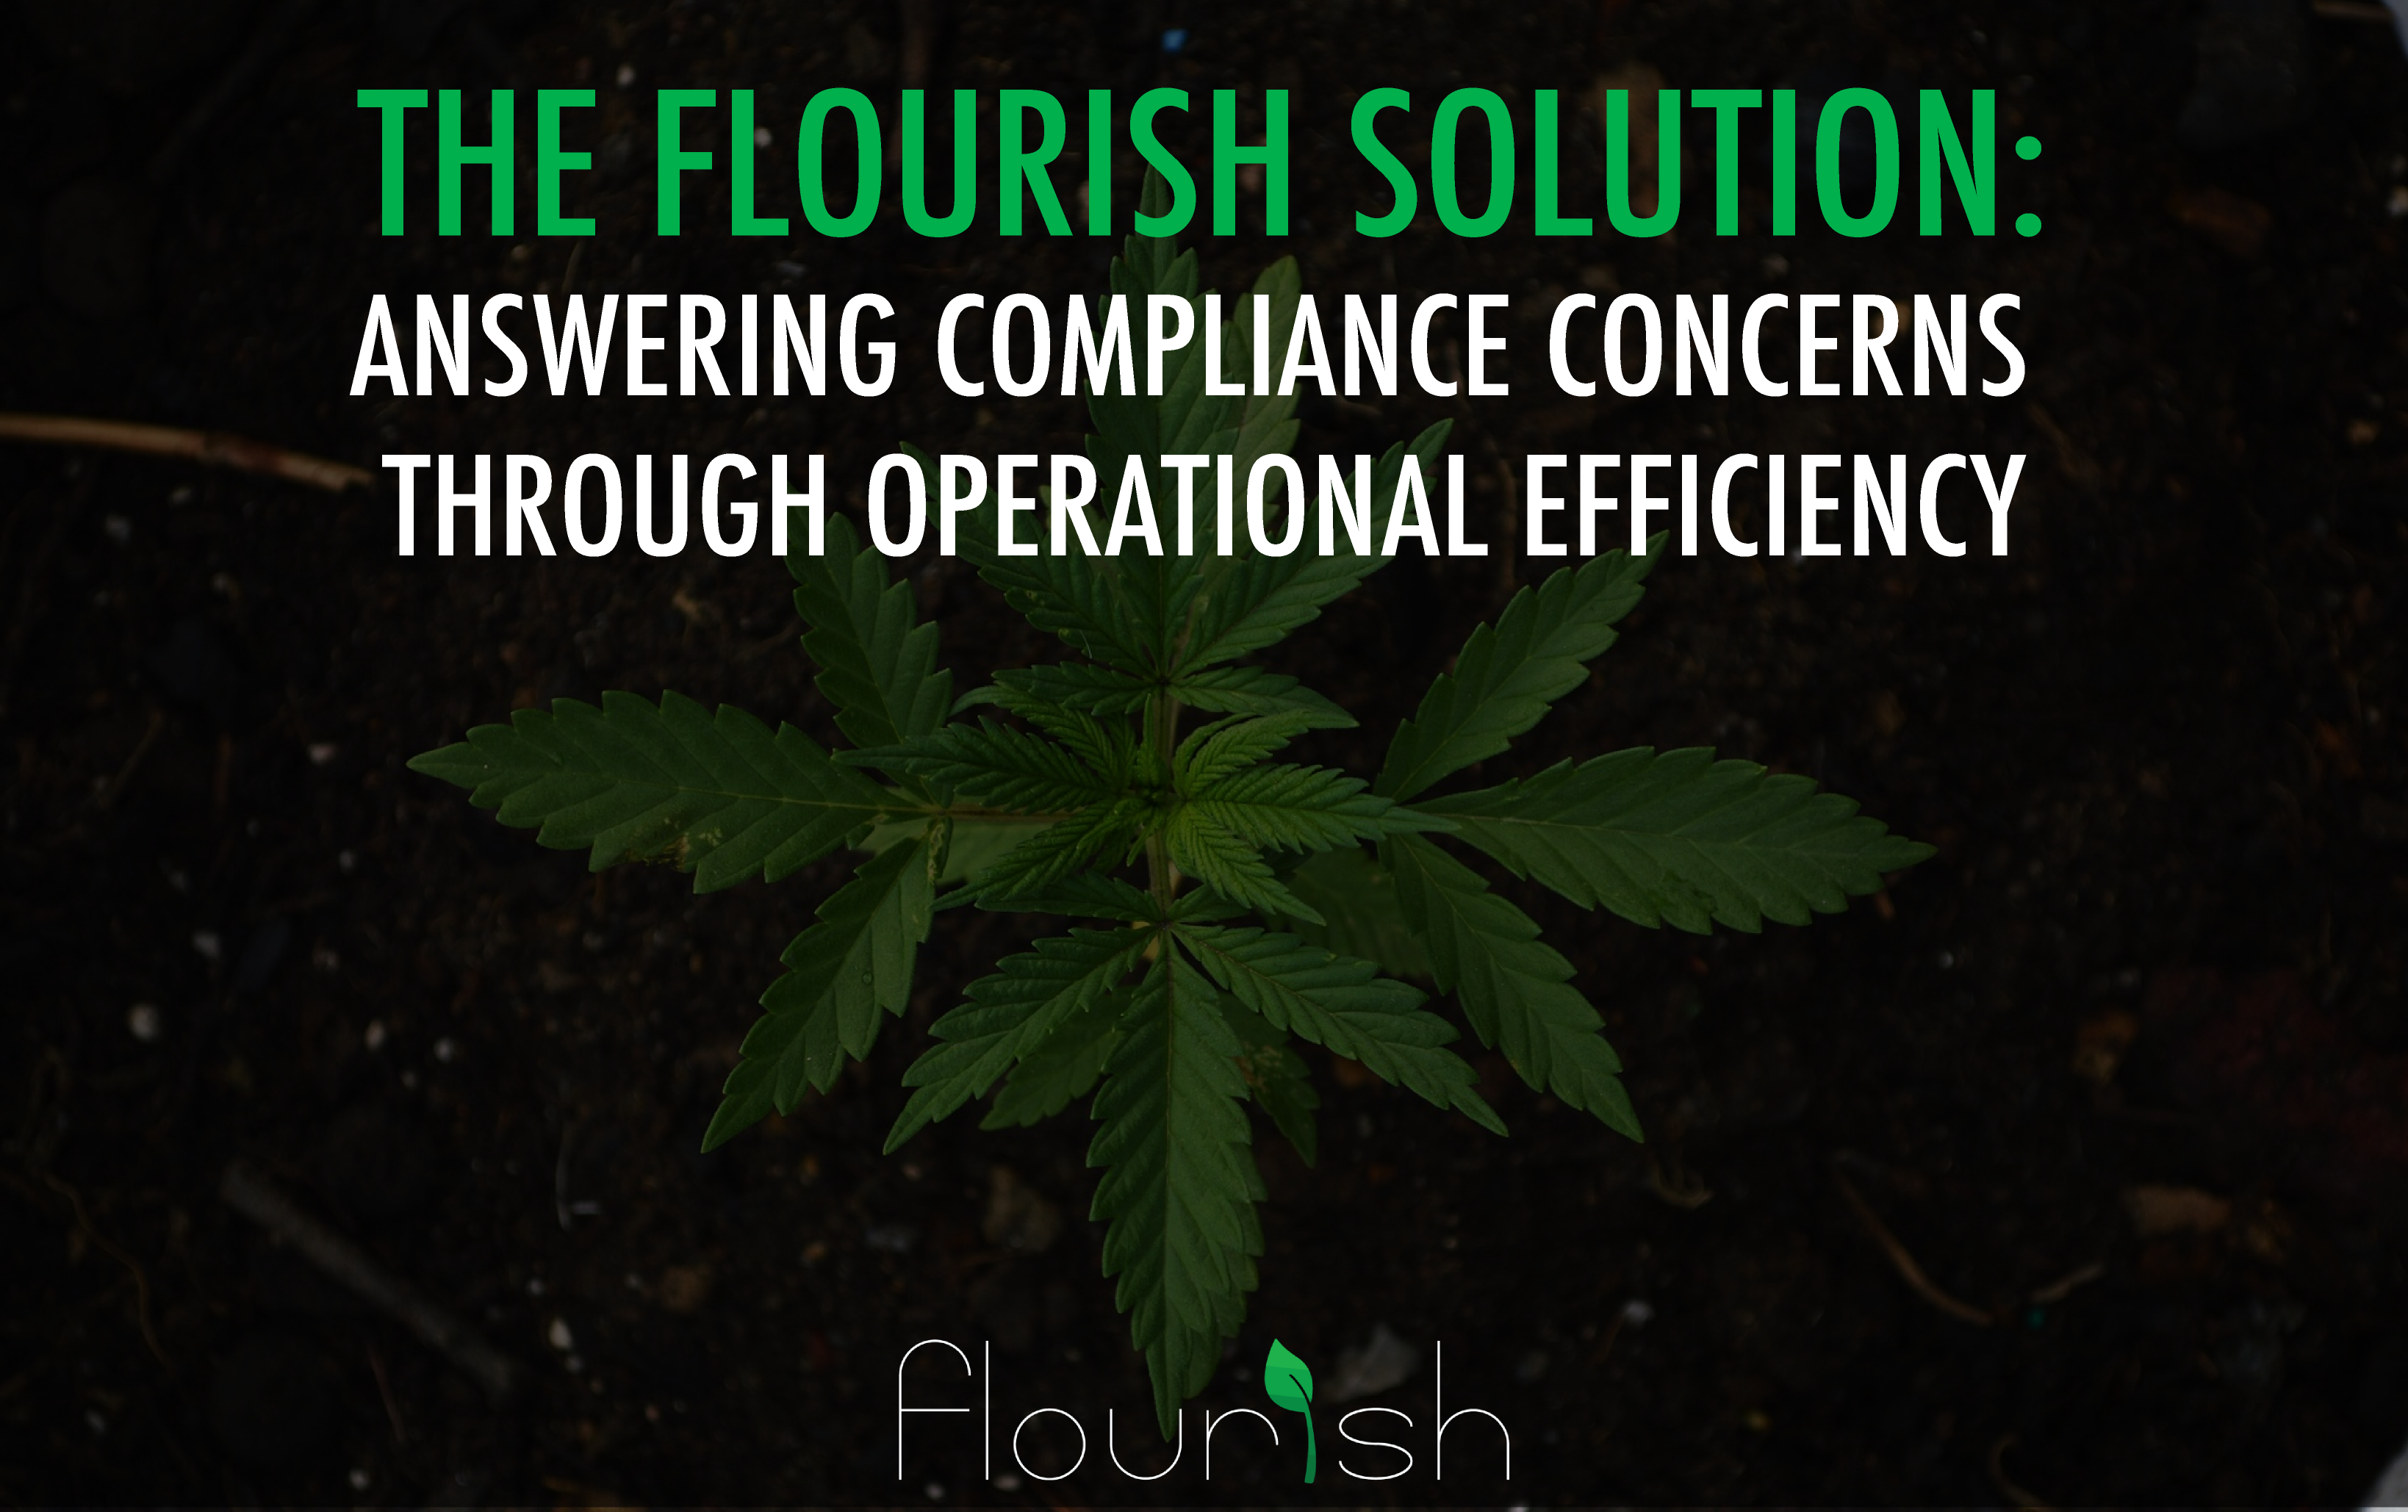 the flourish solution